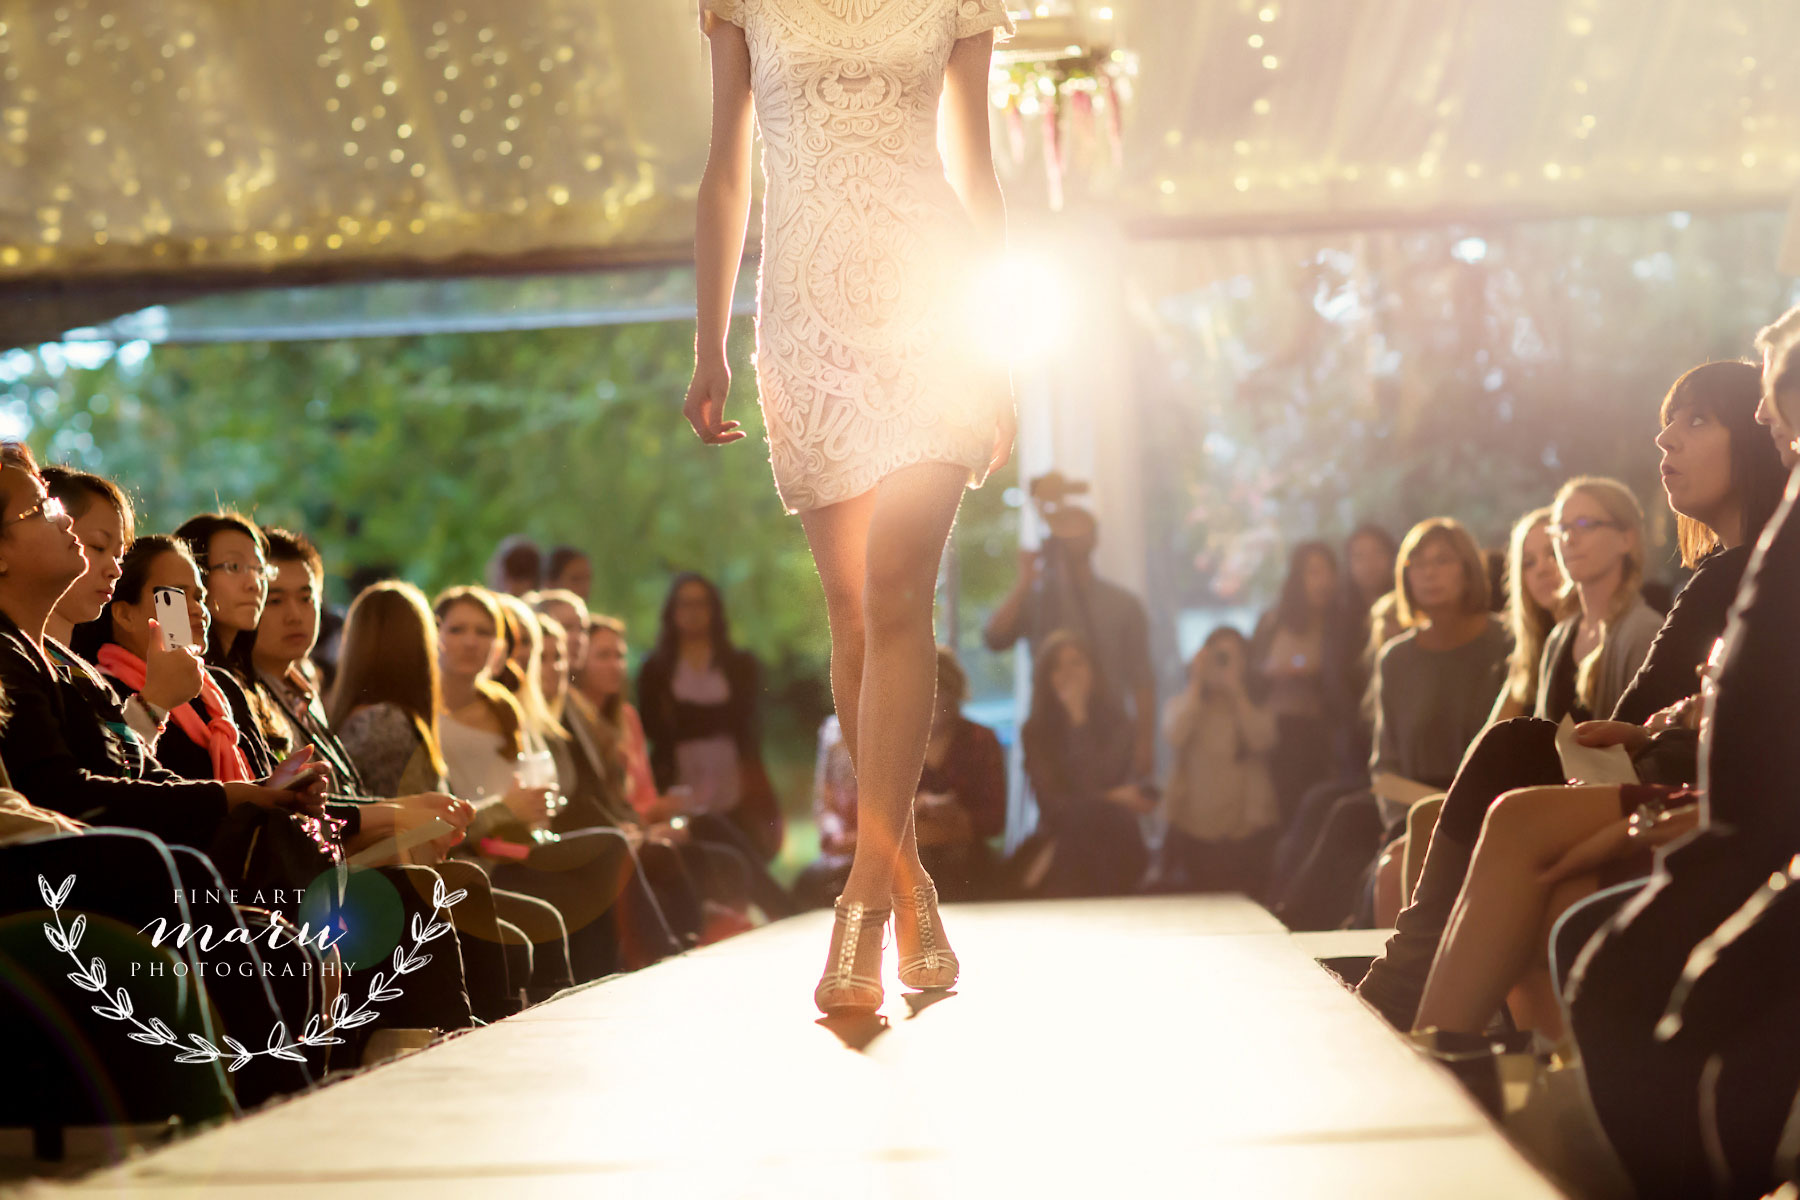 corporate event decor - fashion show design - catwalk - show decor